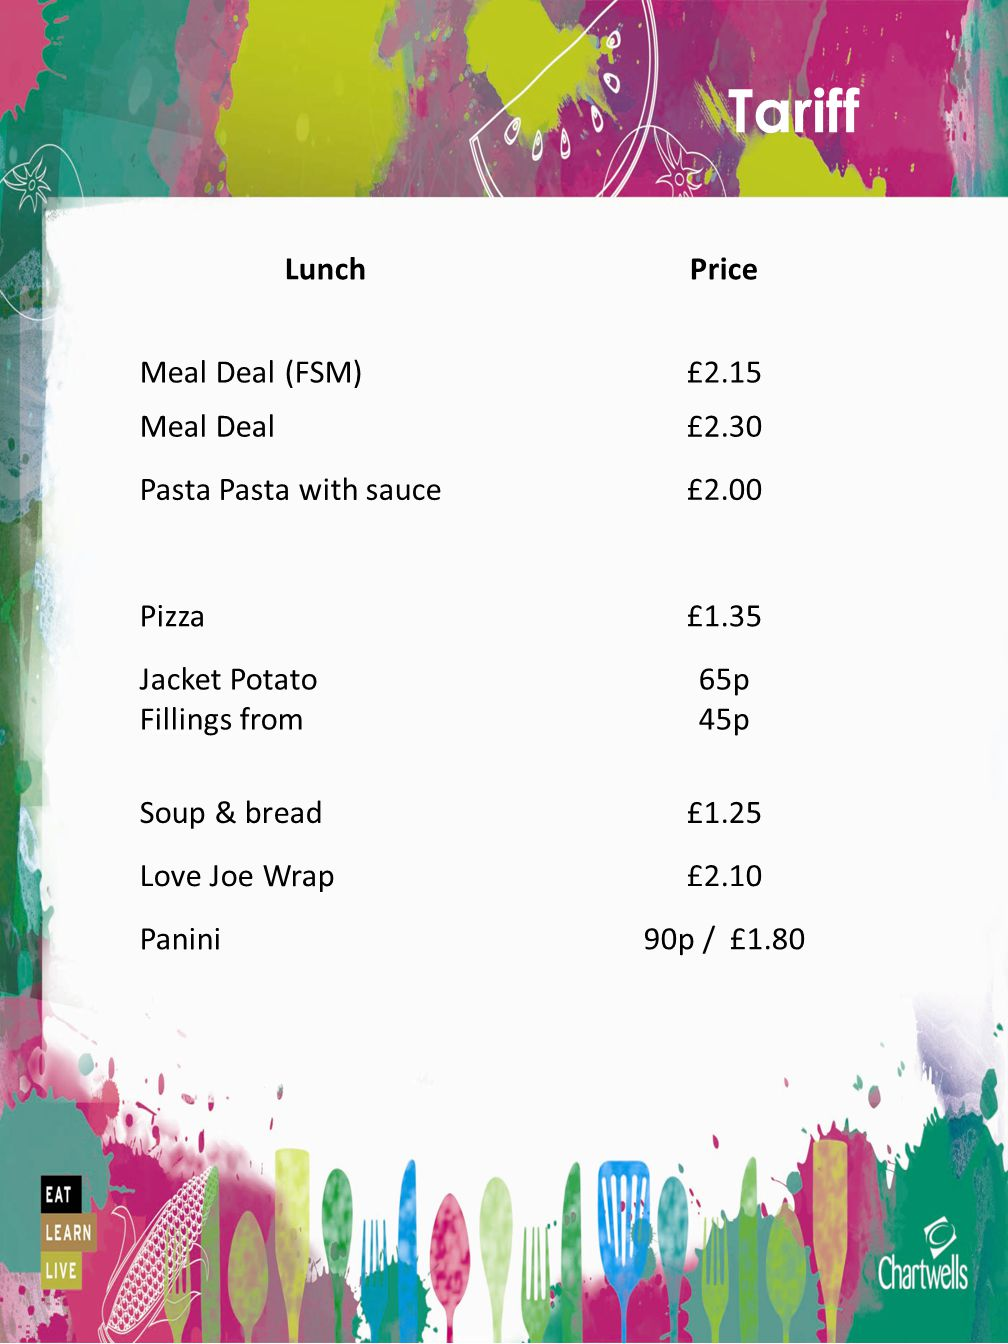 Tariff LunchPrice Meal Deal (FSM)£2.15 Meal Deal£2.30 Pasta Pasta with sauce£2.00 Pizza£1.35 Jacket Potato Fillings from 65p 45p Soup & bread£1.25 Love Joe Wrap£2.10 Panini90p / £1.80